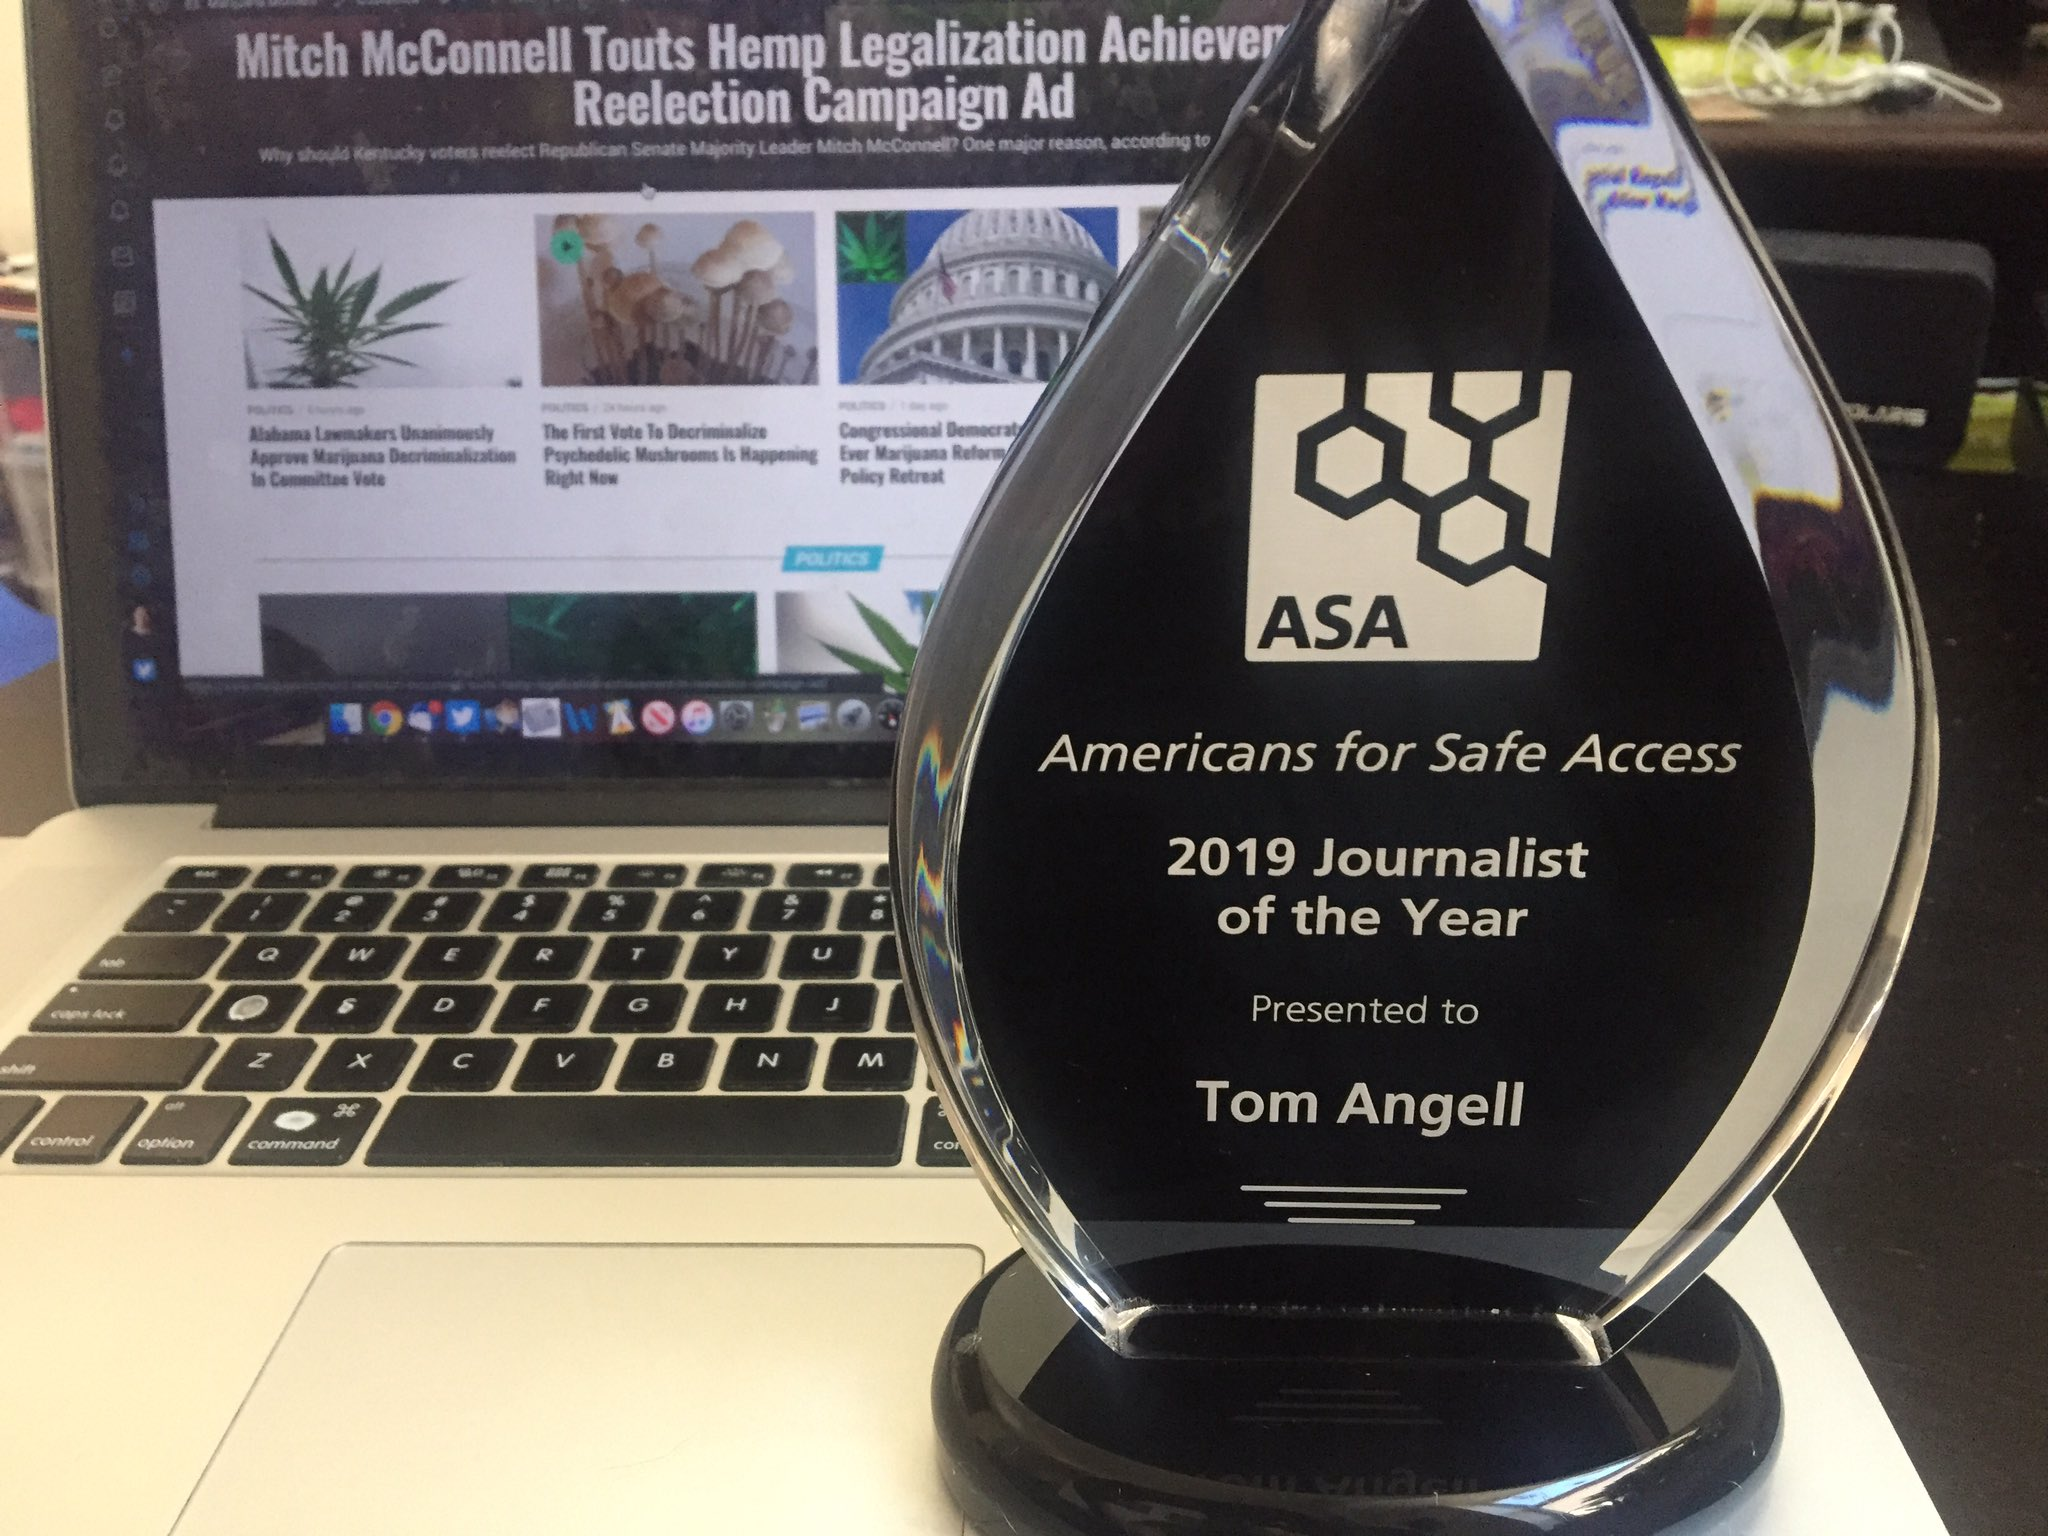 I'm honored to have received this beautiful Journalist of the Year award from @SafeAccess. Thanks this this, and for your good work on behalf of patients! https://t.co/xDta5ySjaR